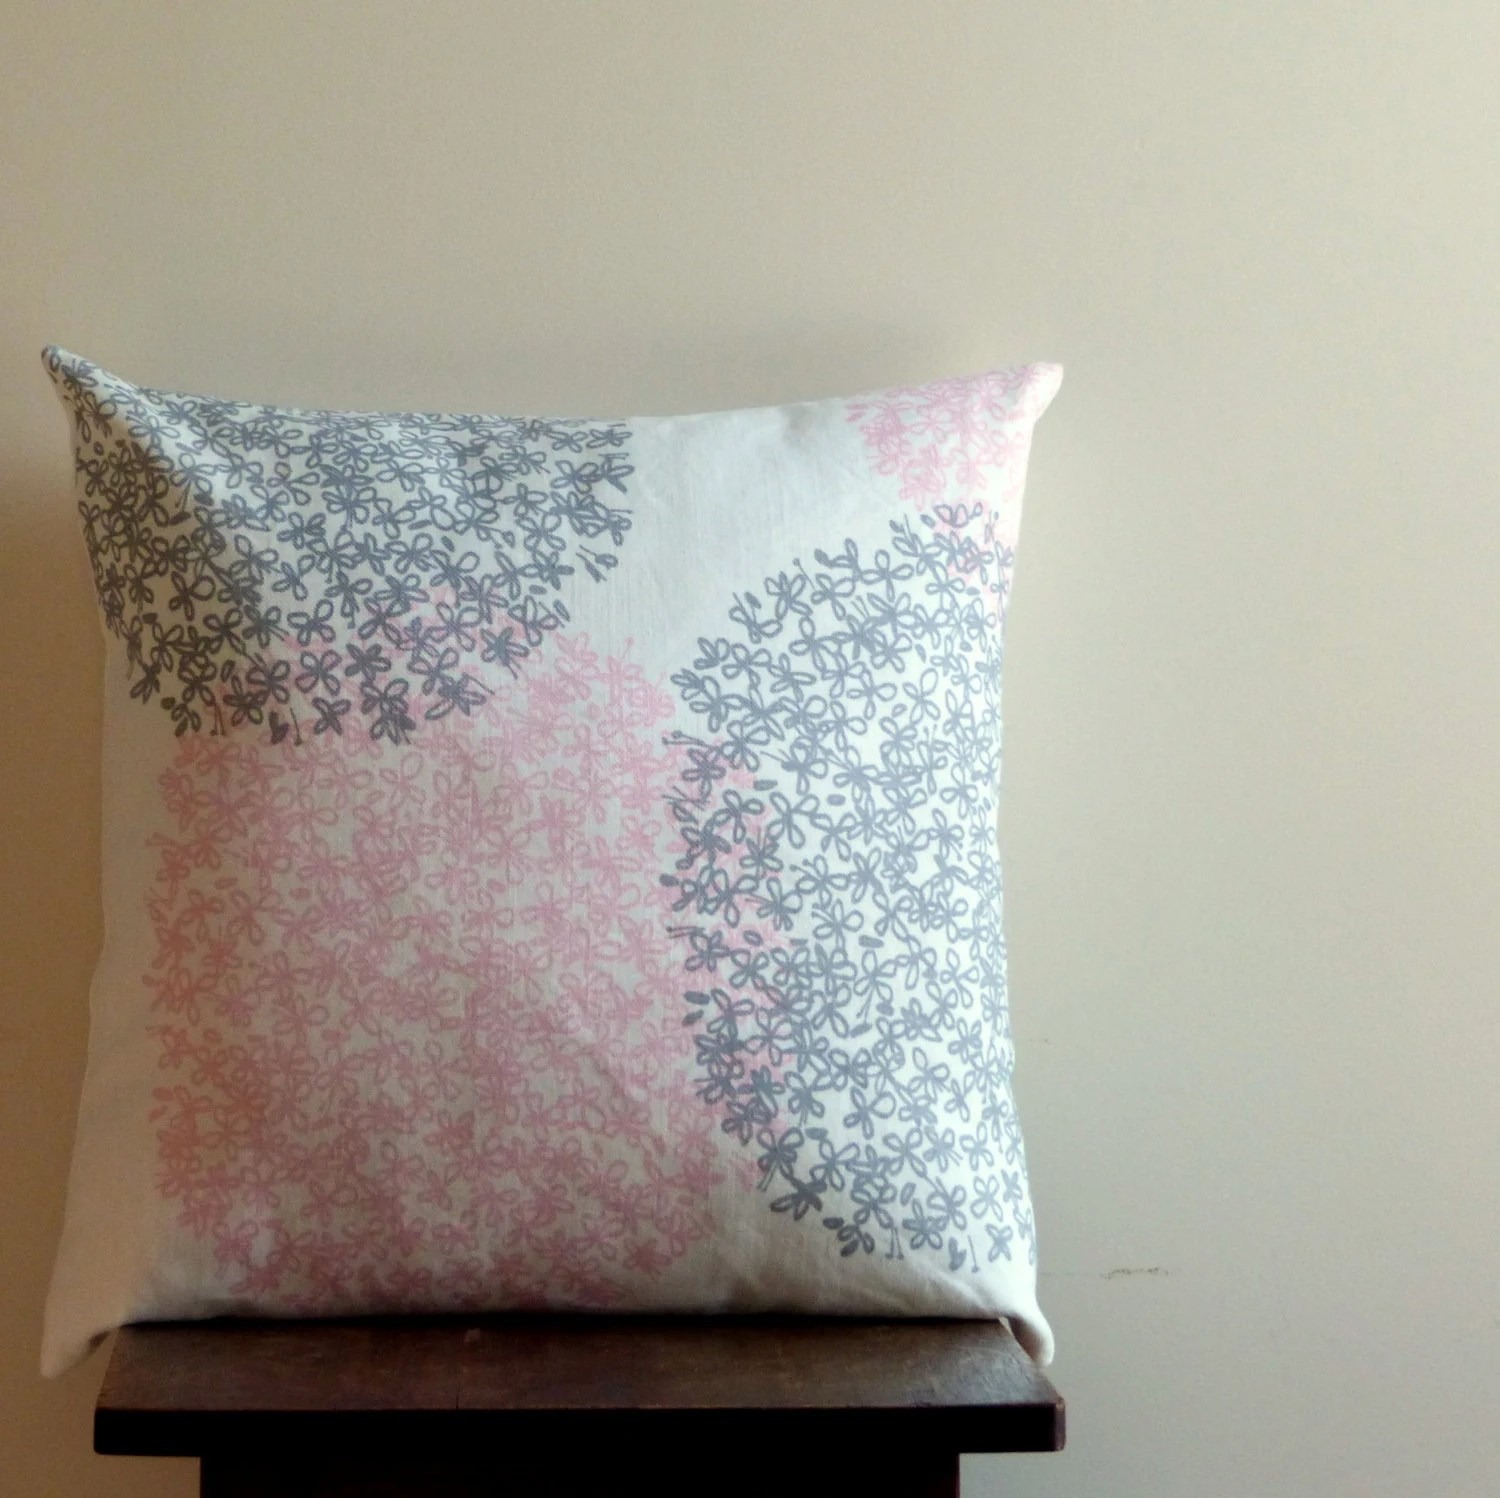 Linen Pillow Cover, Pink Grey White Flowered Throw Pillow Cover, Pastel Nursery Decor, Invisible Zipper, Fits 20 x 20 - LilaKids